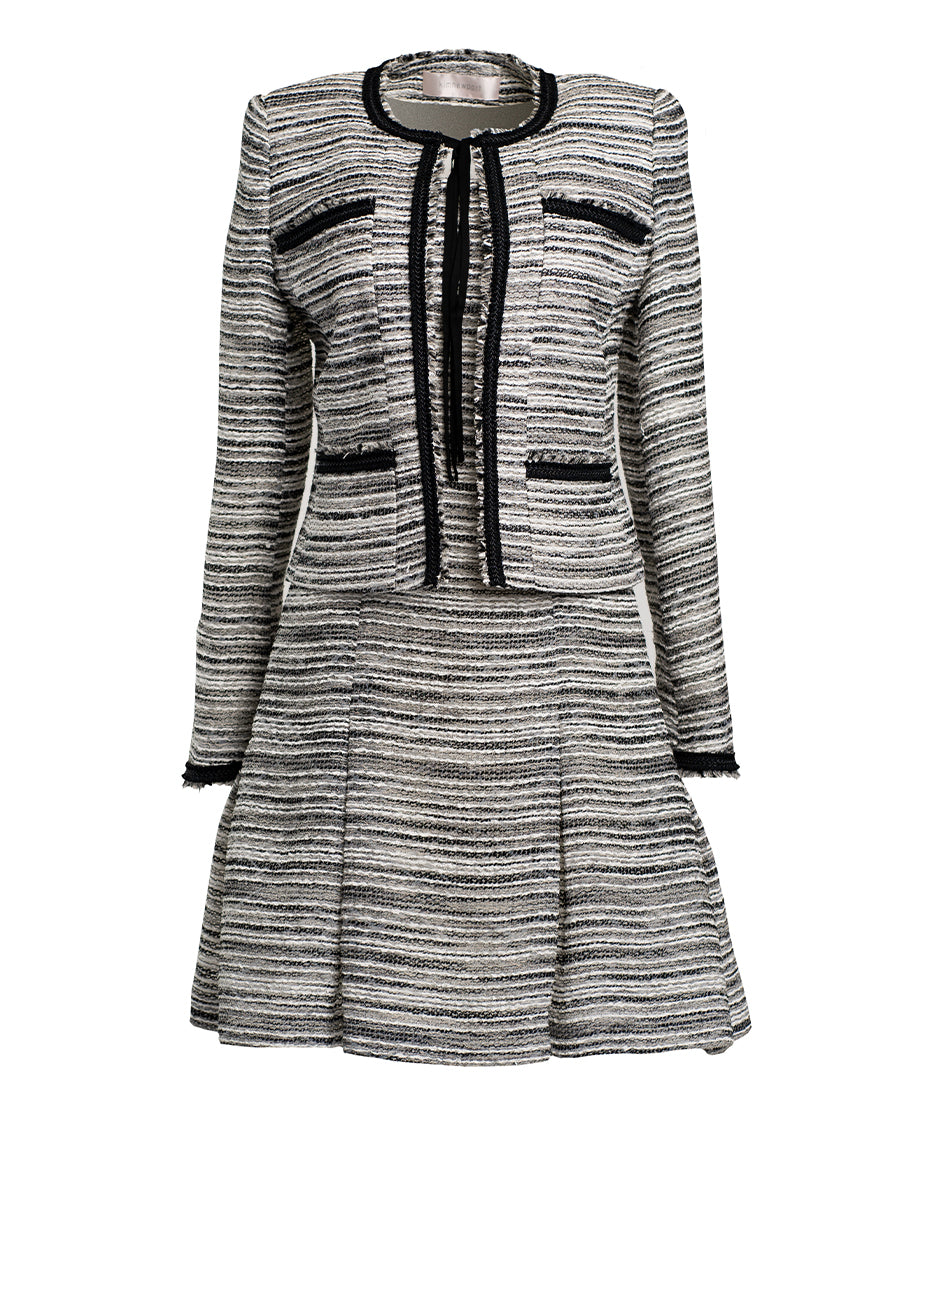 Fringe Jacket Contrast Trim with Sleeveless Dress